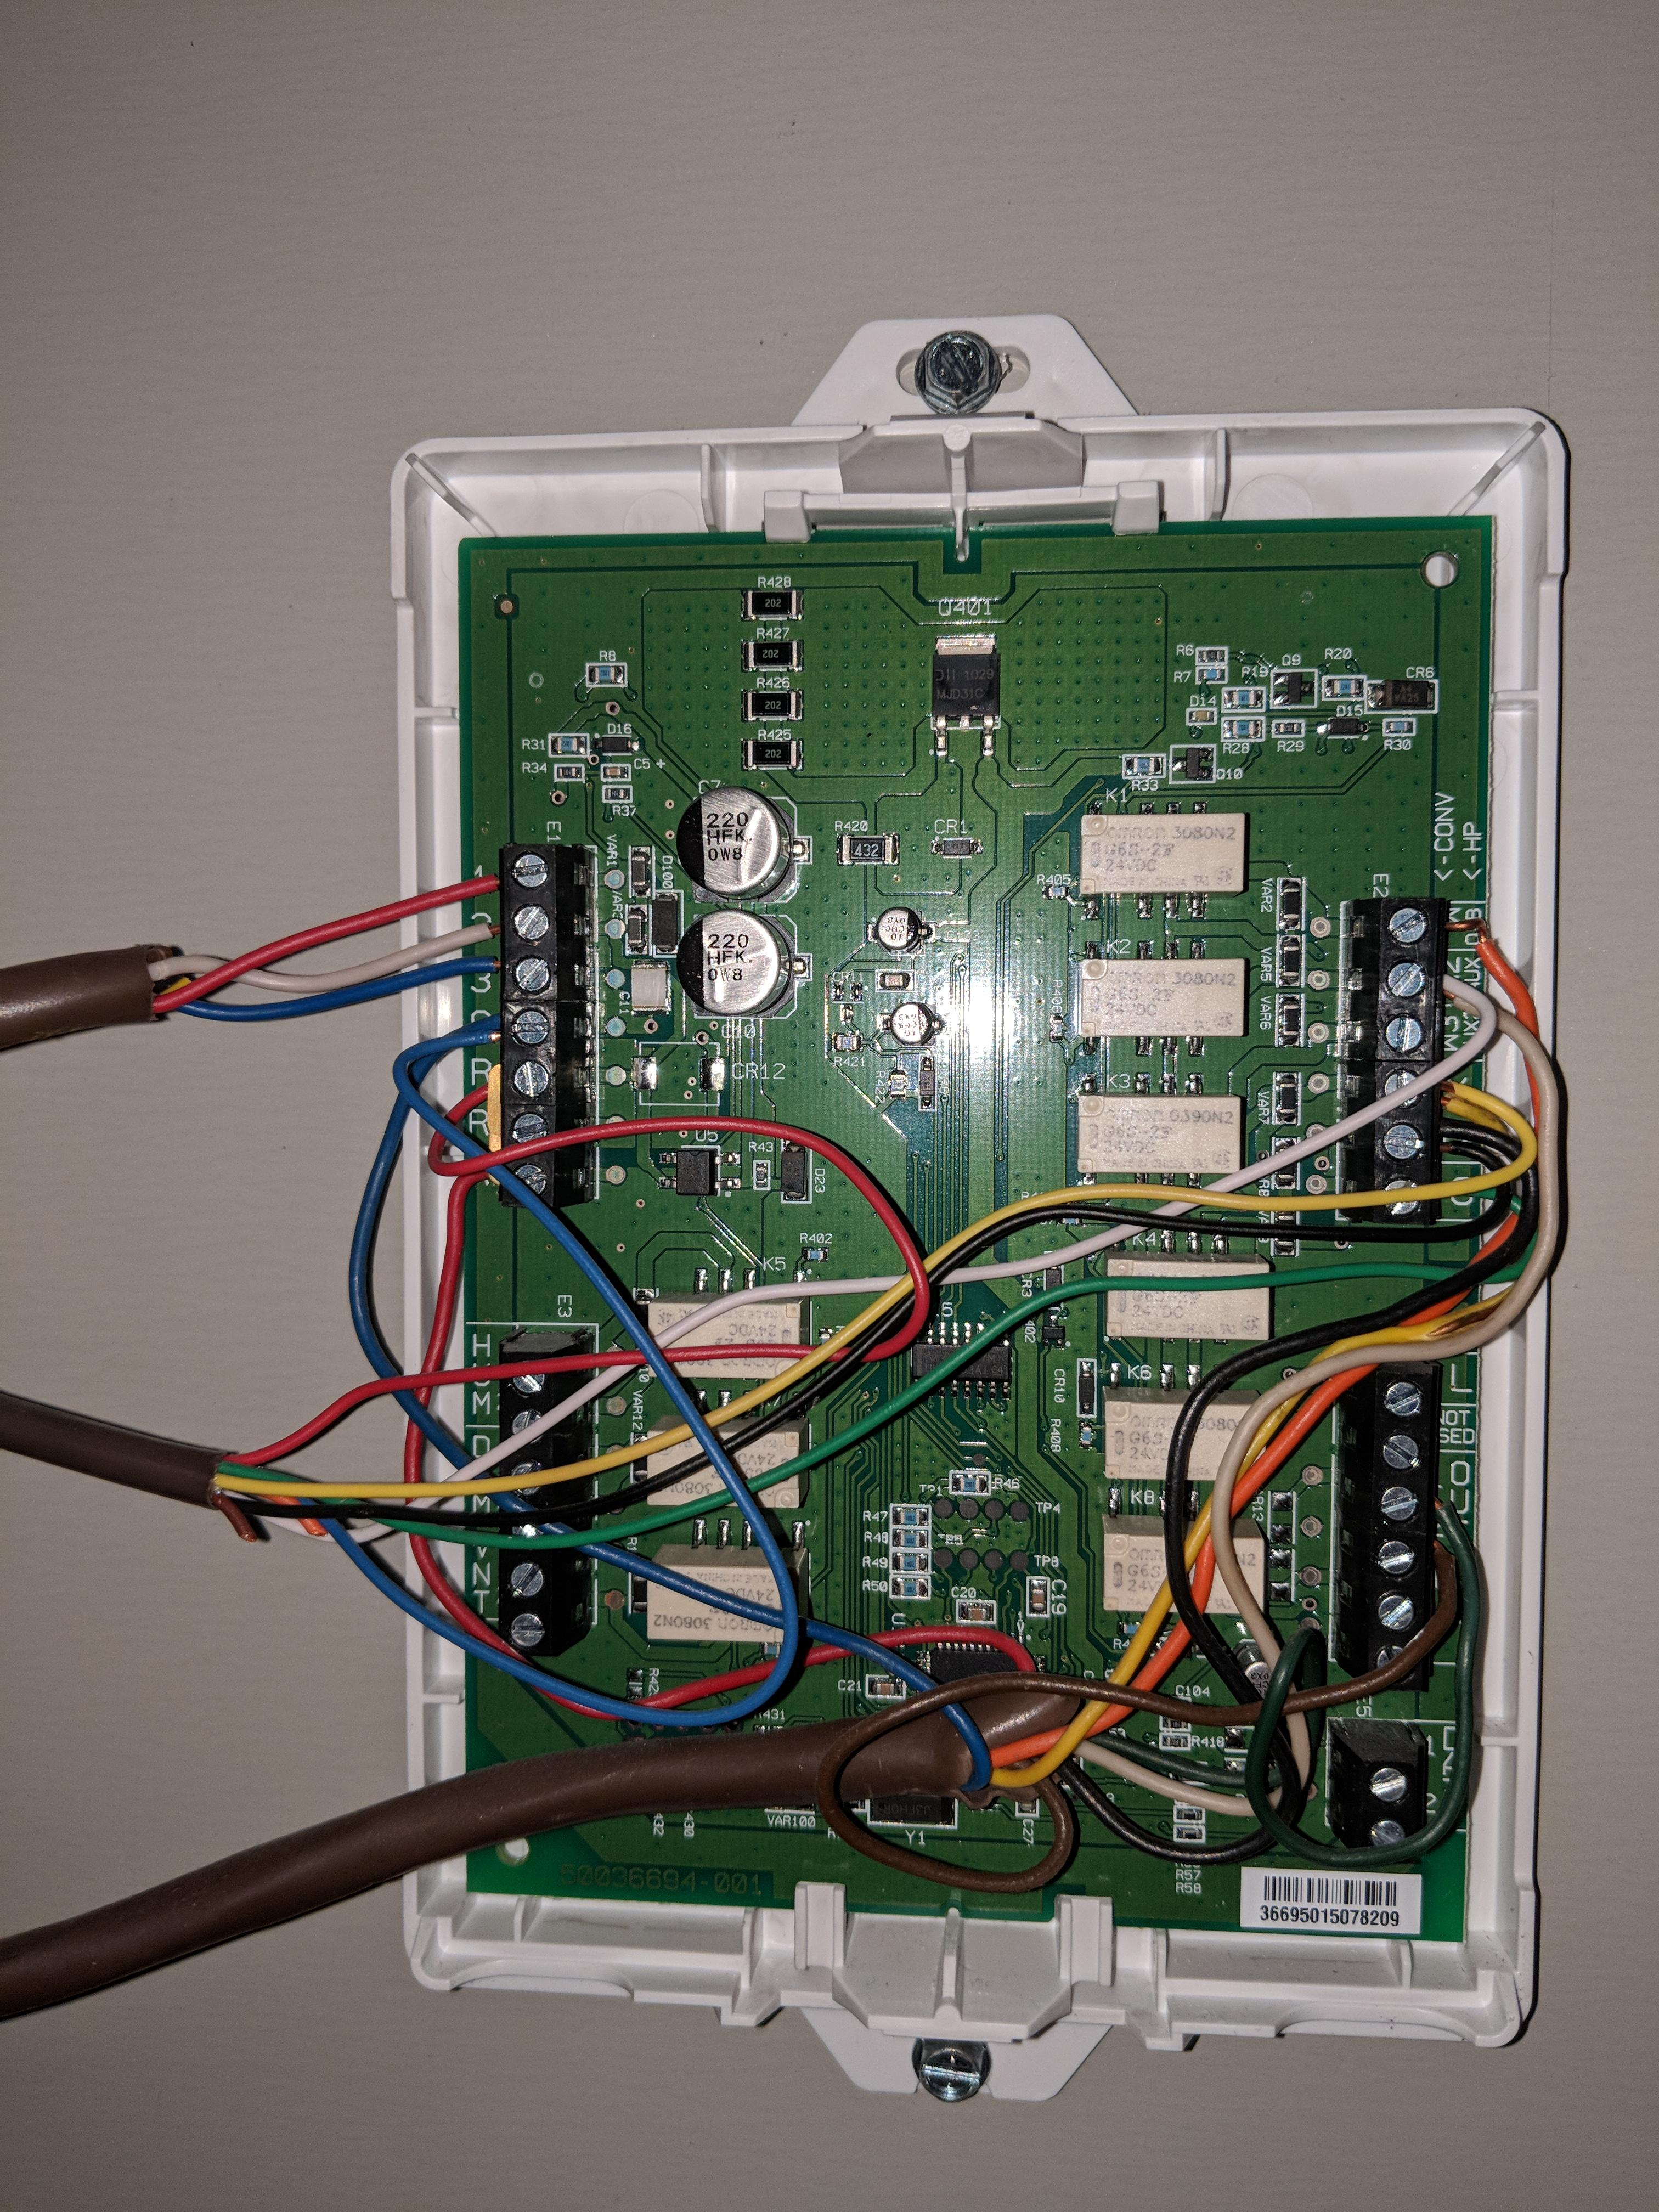 Th9421c1004 Manual : th9421c1004, manual, Bypass, Honeywell, THM5421C, Ecobee4?, Ecobee